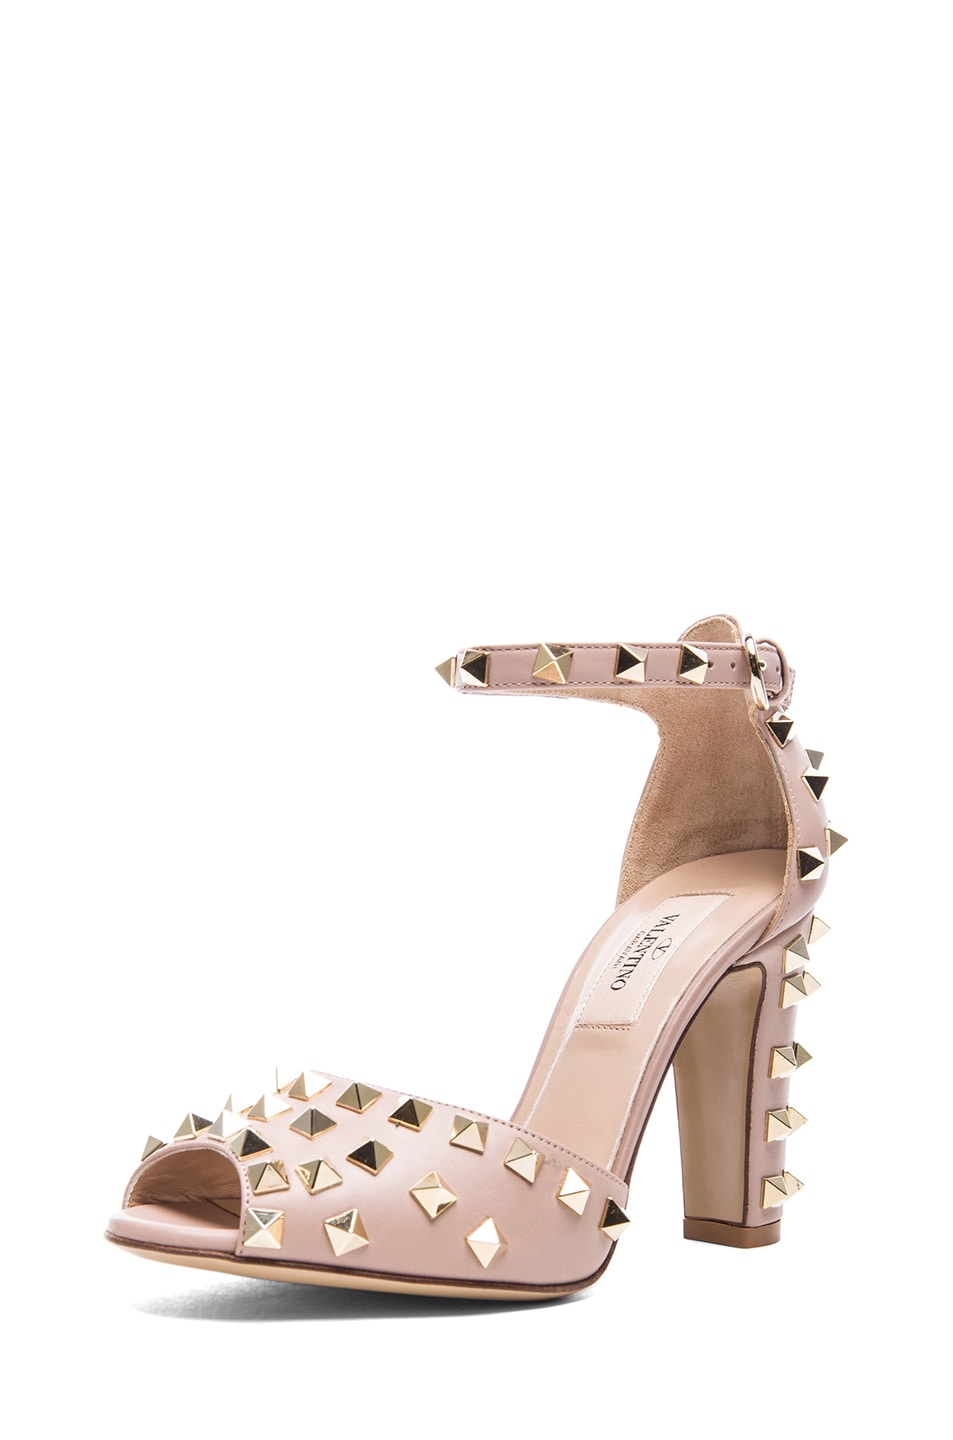 Image 2 of Valentino Rockstud Leather Sandals T.95 in Poudre